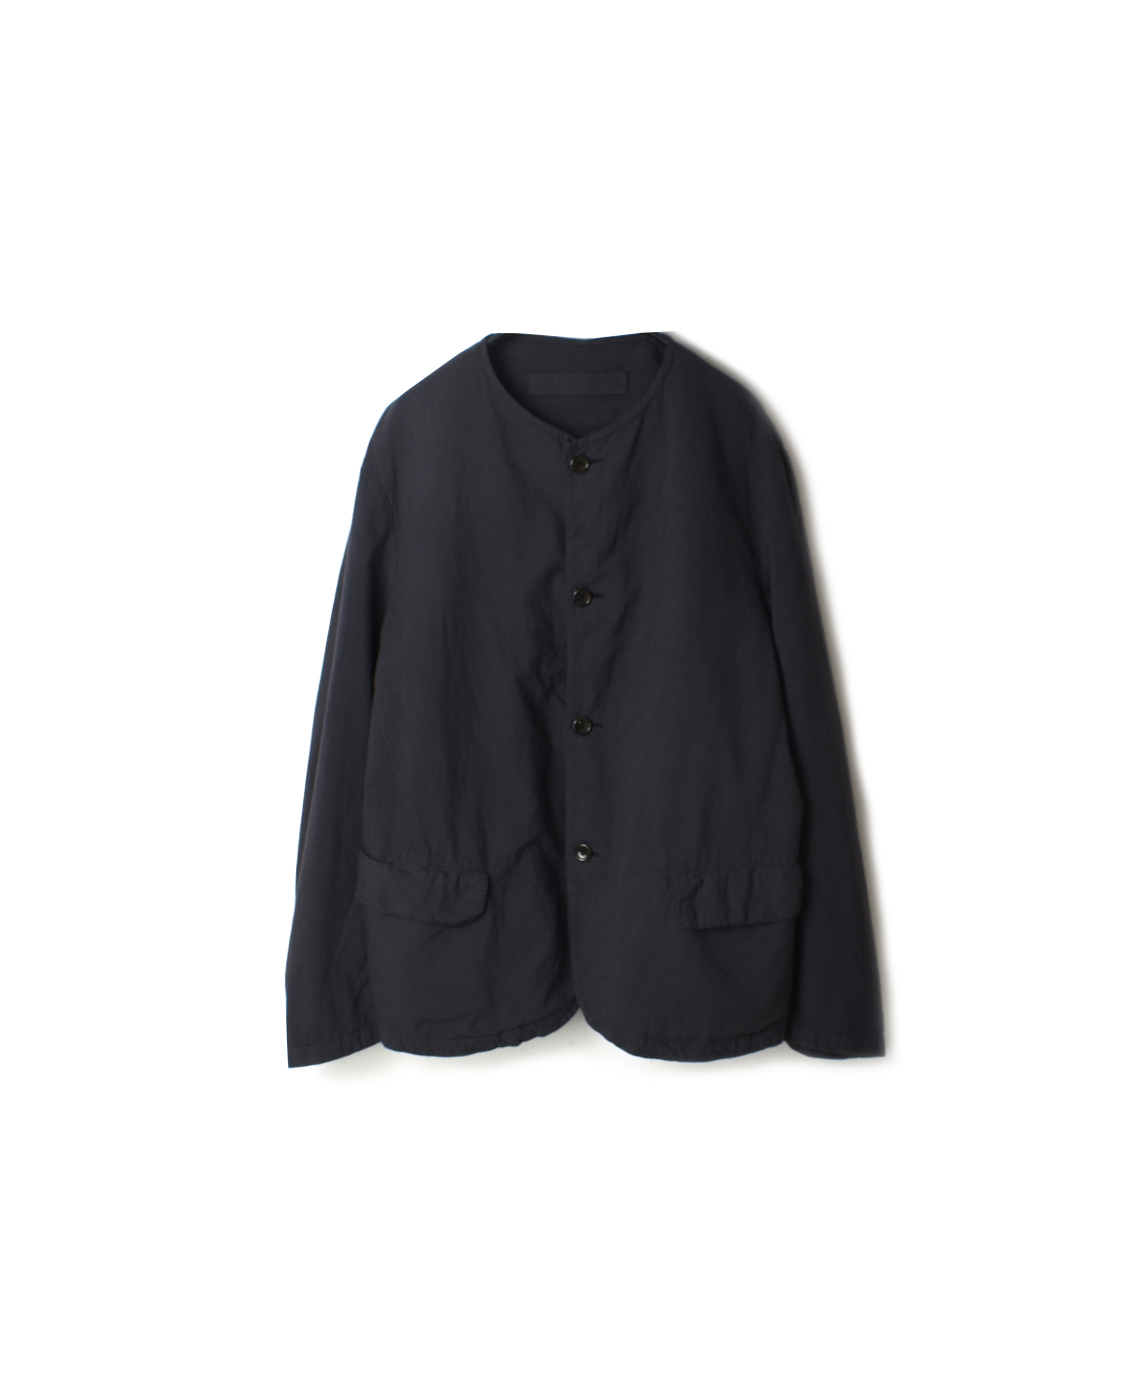 NVL1751CD 60'S ORGANIC CAMBRIC NO COLLAR JACKET